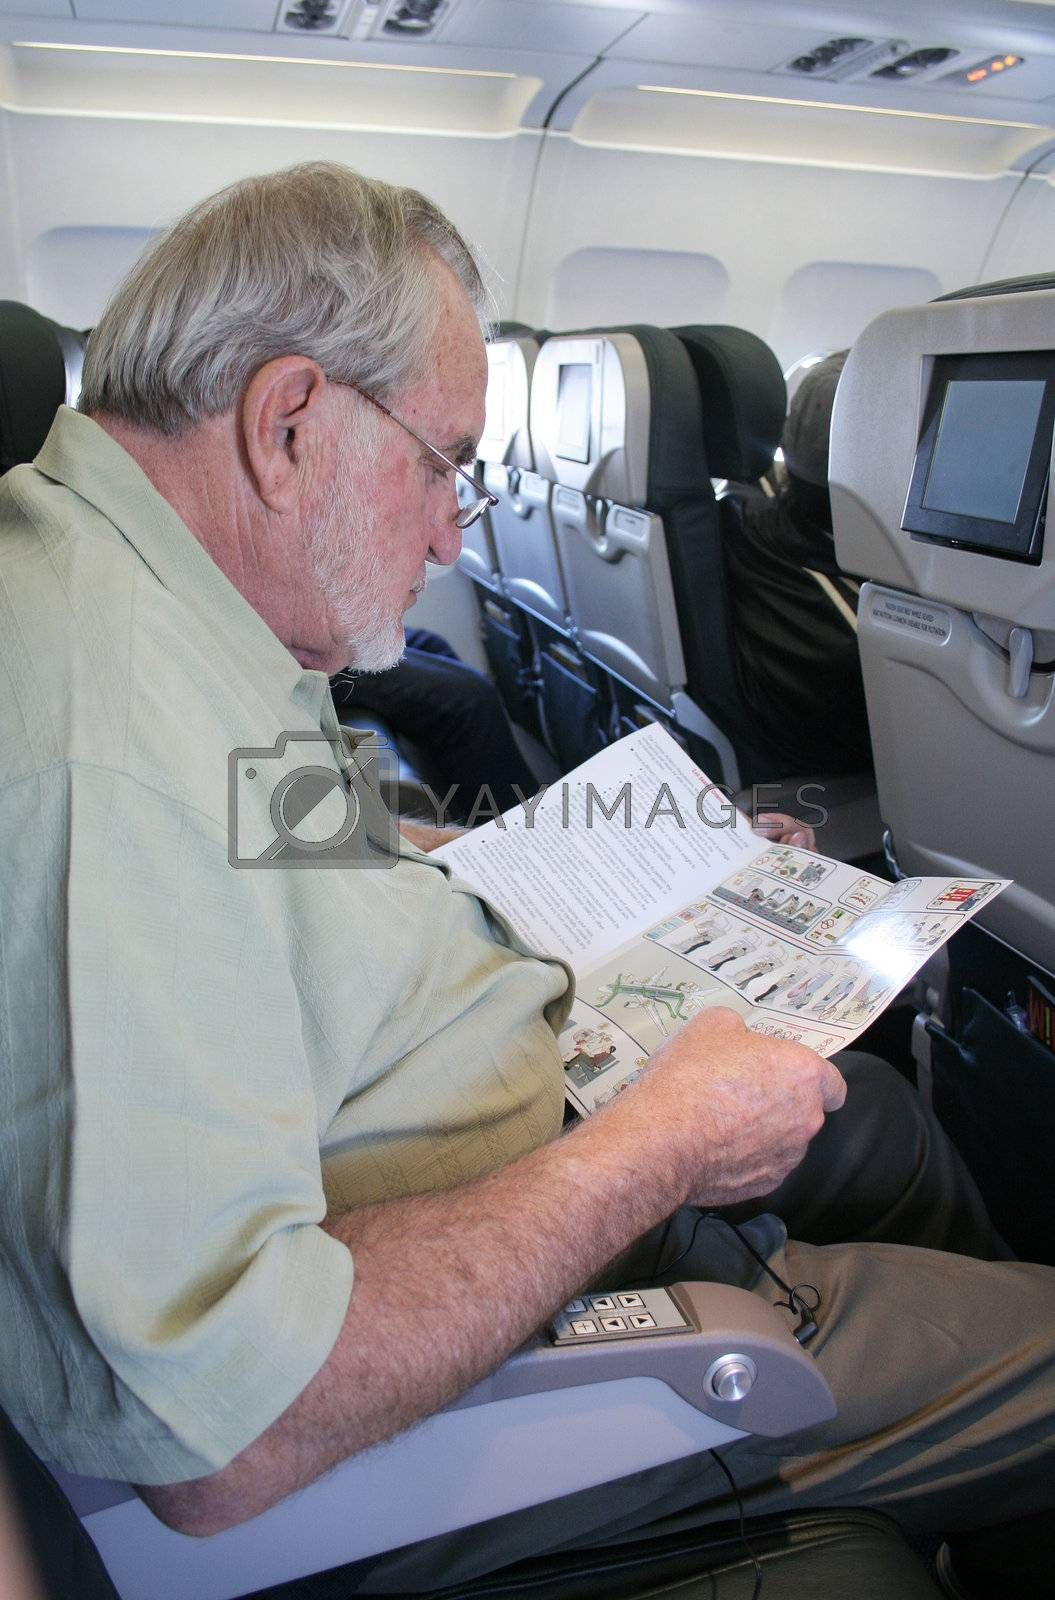 Man on airplane reading safety instructions